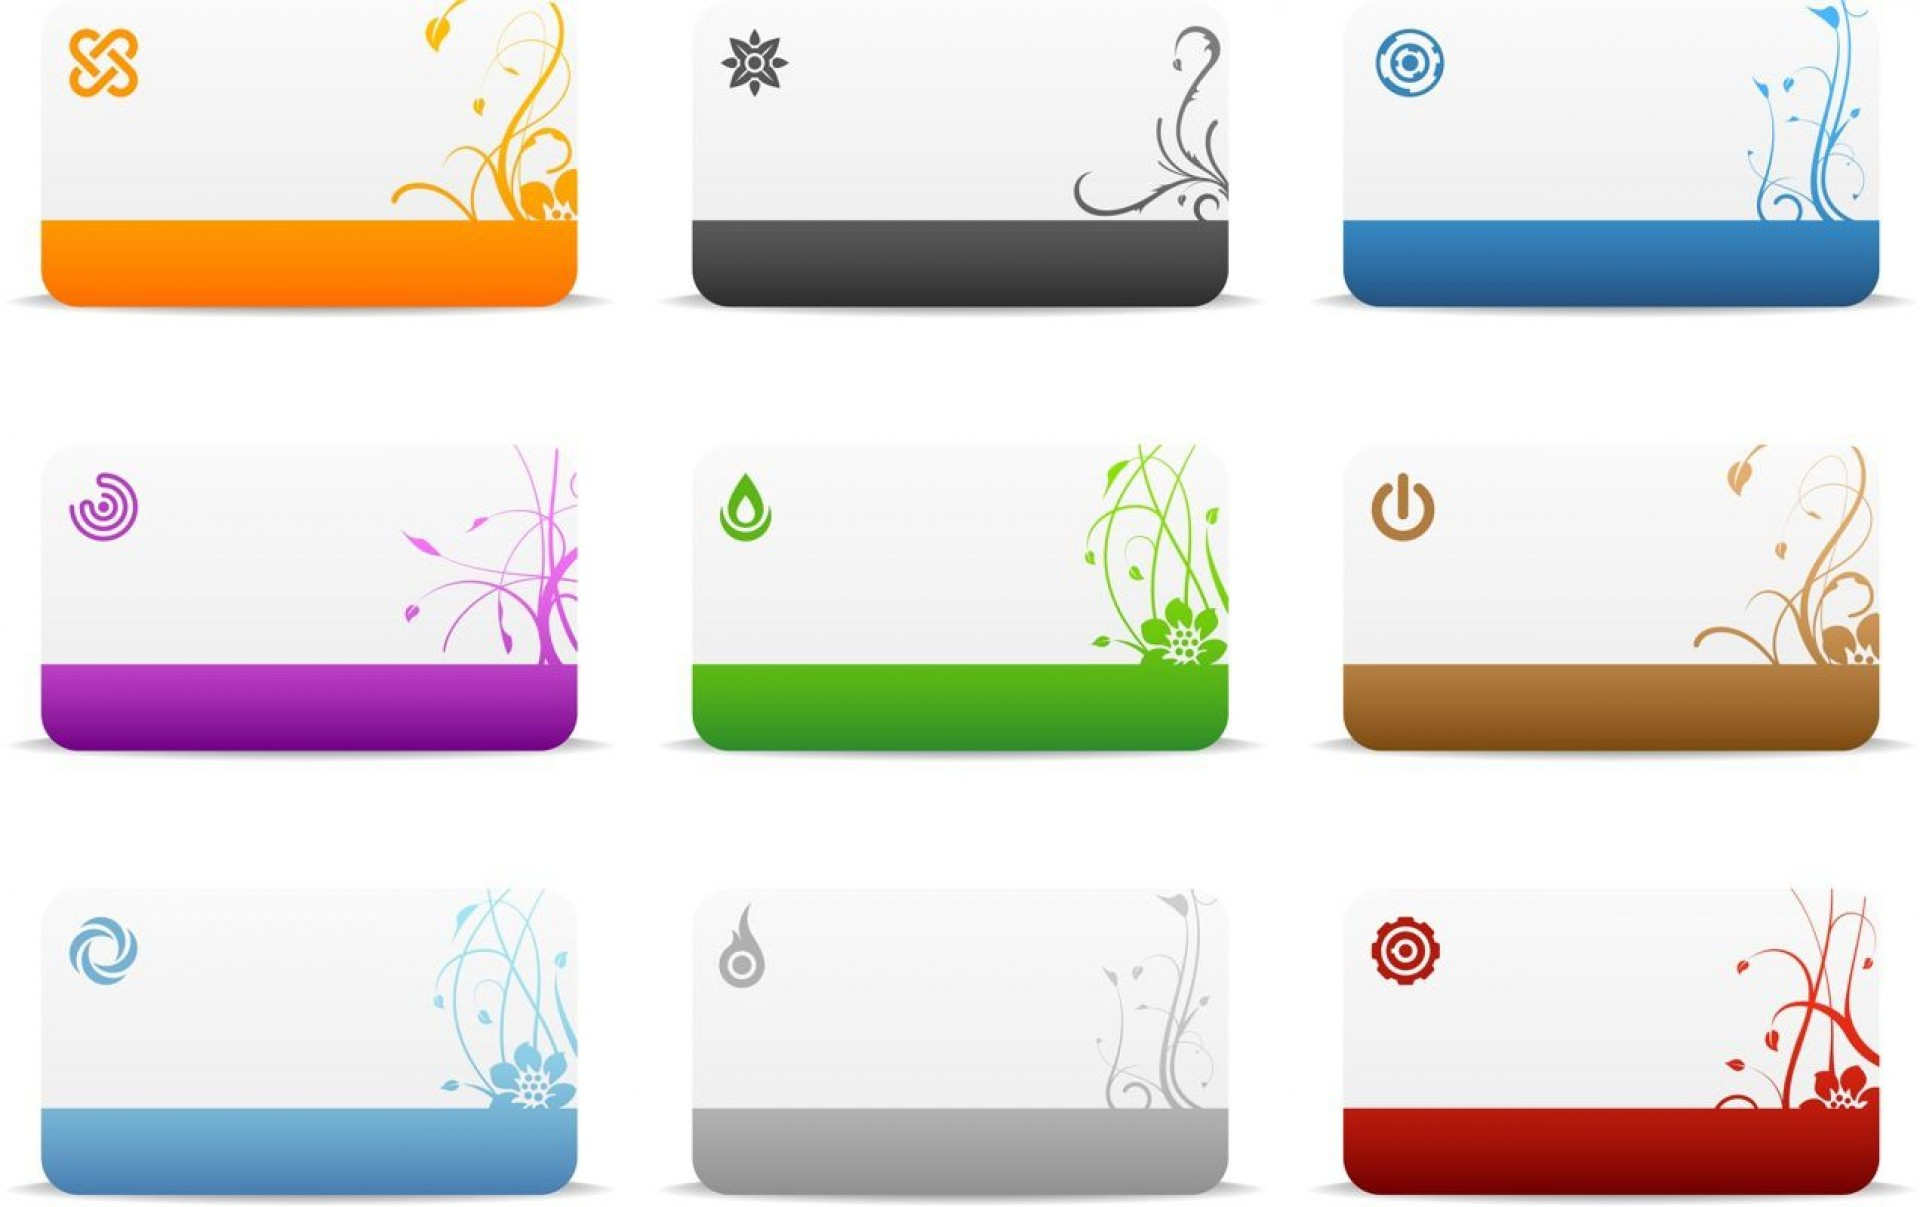 009 Exceptional Blank Busines Card Template Photoshop Example  Free Download Psd1920